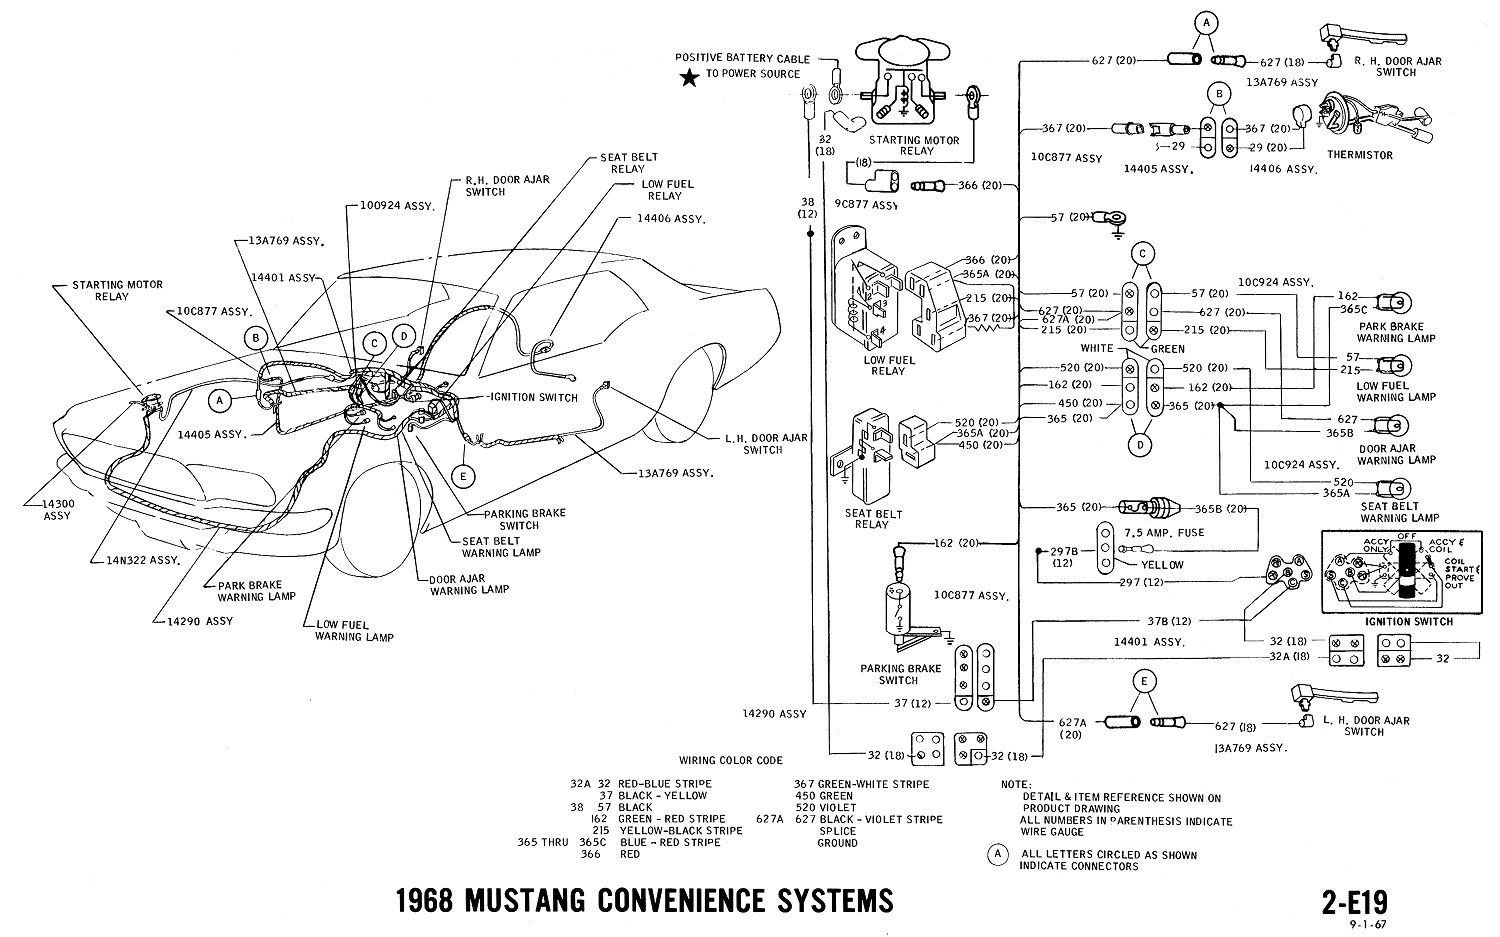 1968 mustang wiring diagram convenience systems 1968 mustang wiring diagrams and vacuum schematics average joe 1969 mustang ignition switch wiring diagram at webbmarketing.co